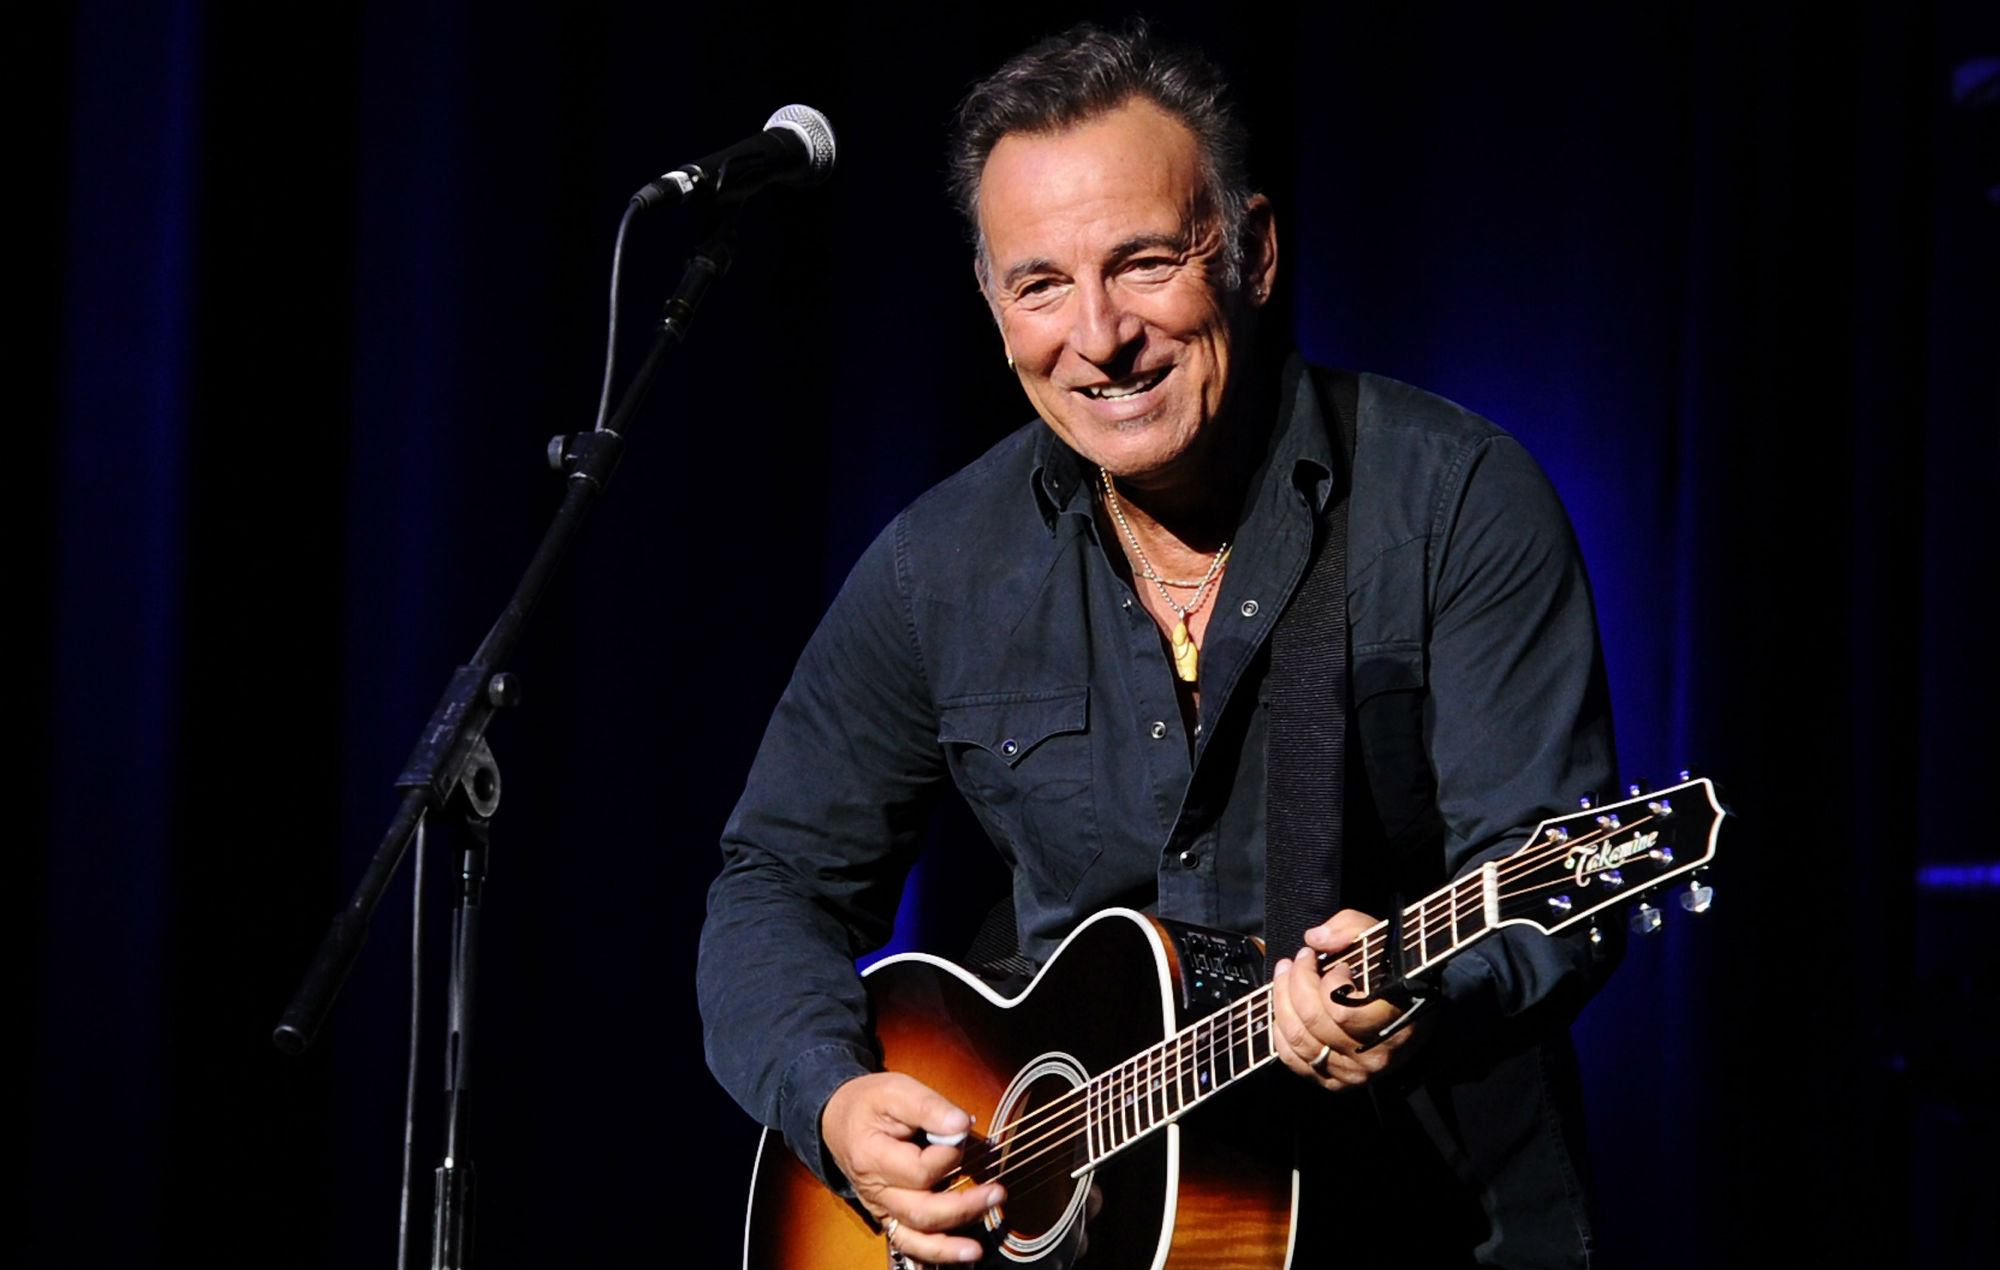 Bruce Springsteen Tour 2020 Bruce Springsteen confirms new E Street Band album and tour for 2020